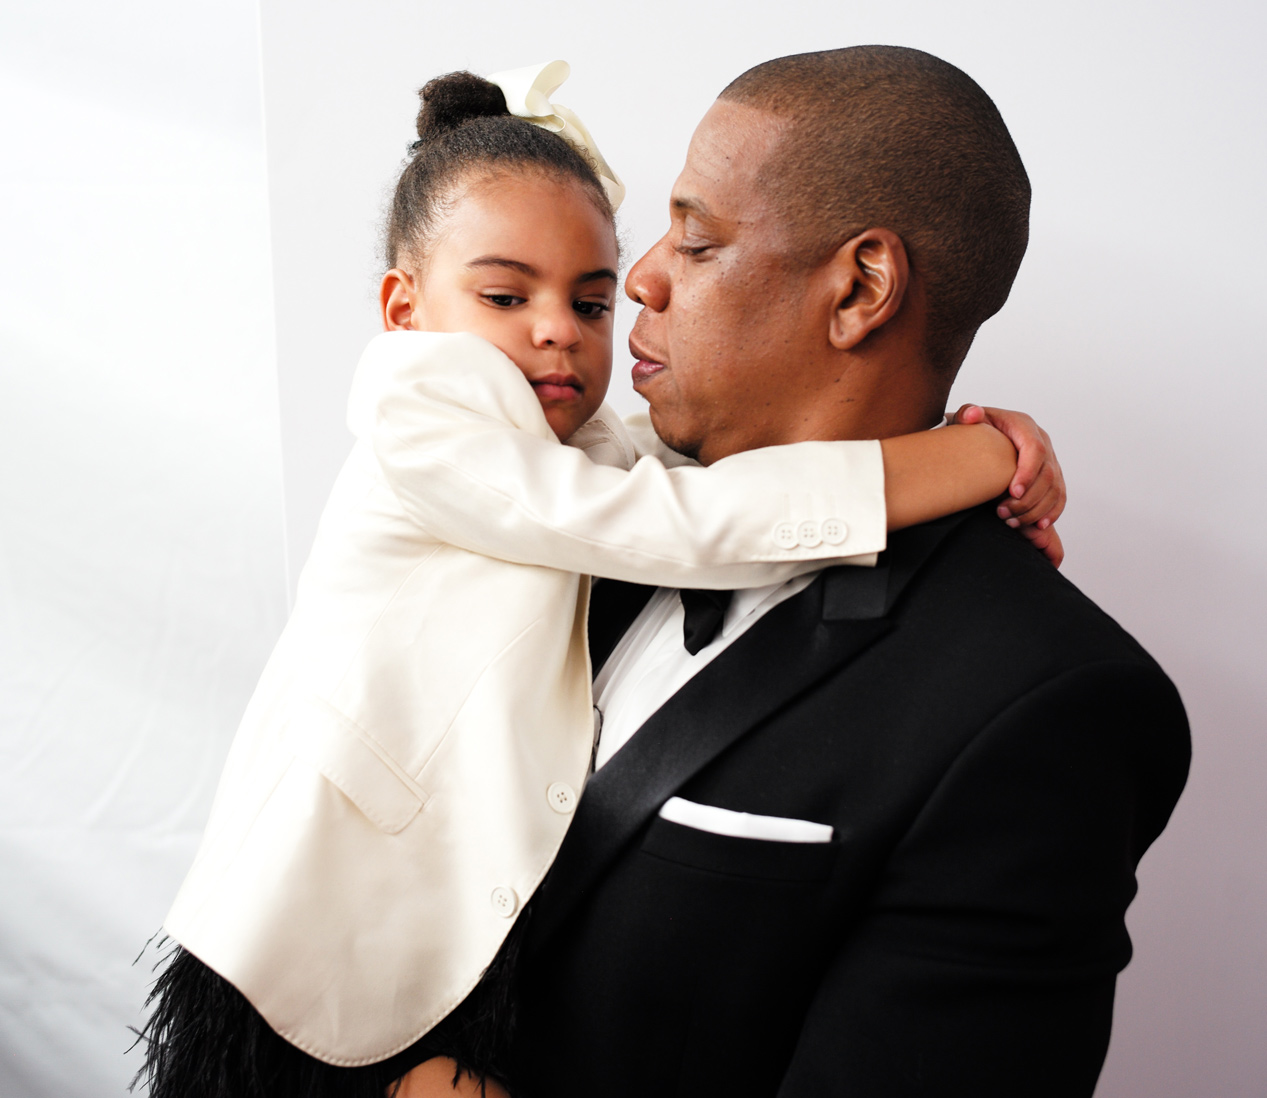 Mandatory Credit: Photo by David X Prutting/BFA/REX/Shutterstock (5712346da)